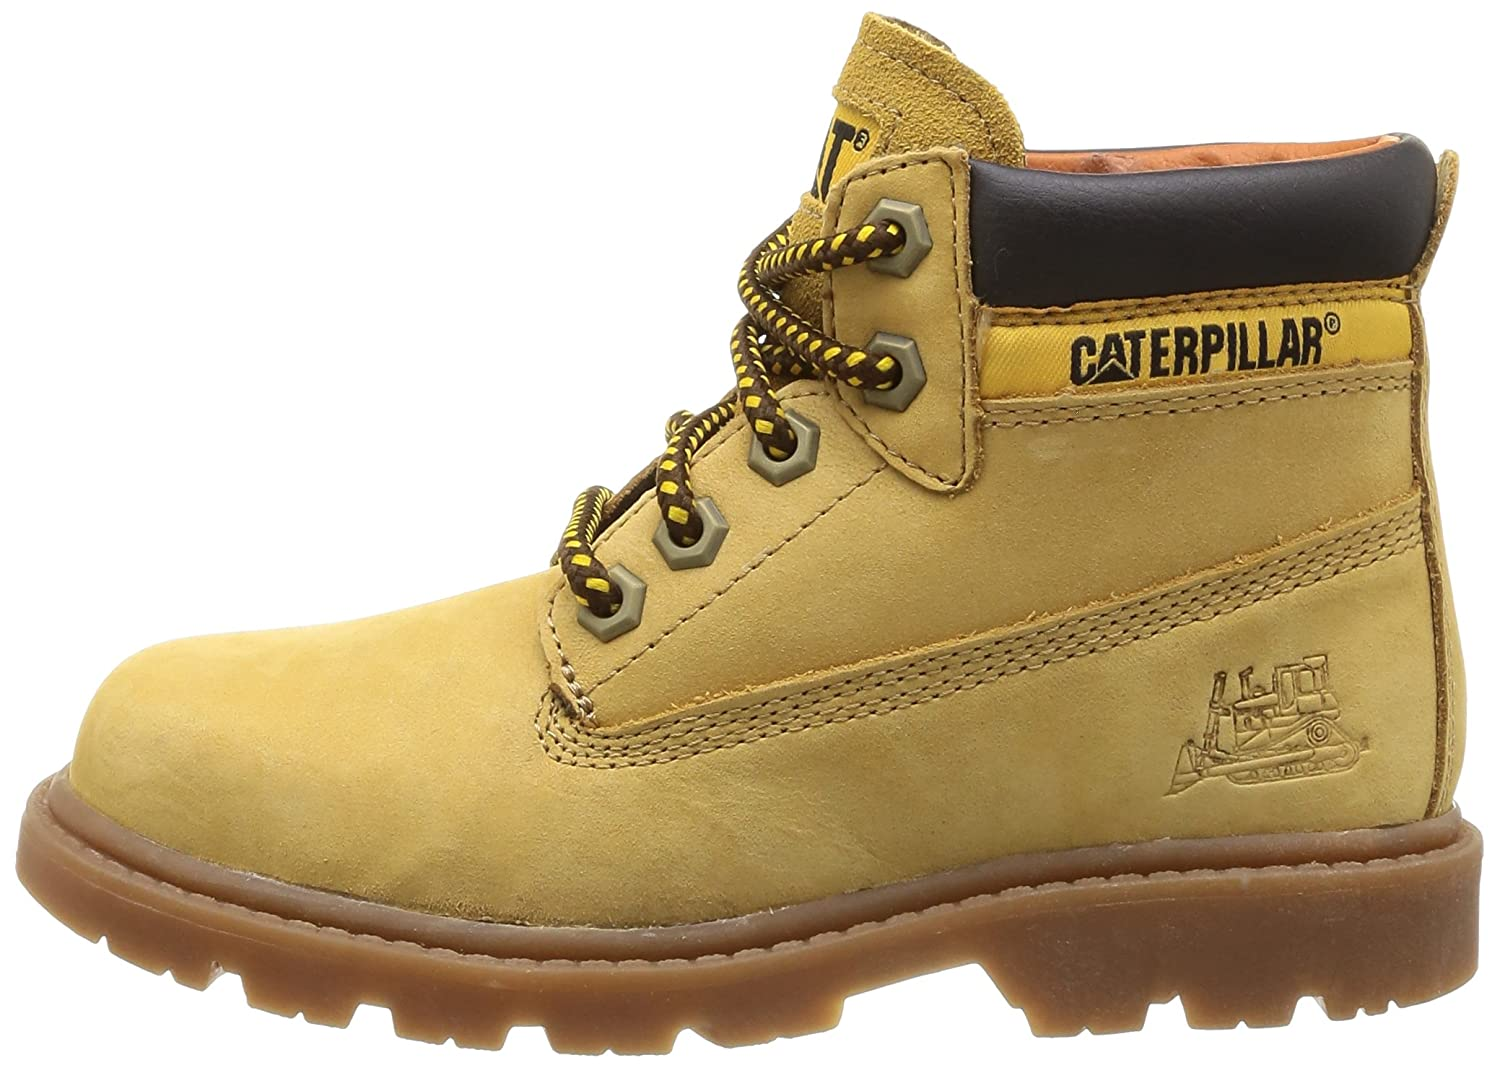 Caterpillar Colorado Plus Unisex - Reset) Kinder Stiefel Gold (Honey Reset) - 42115a